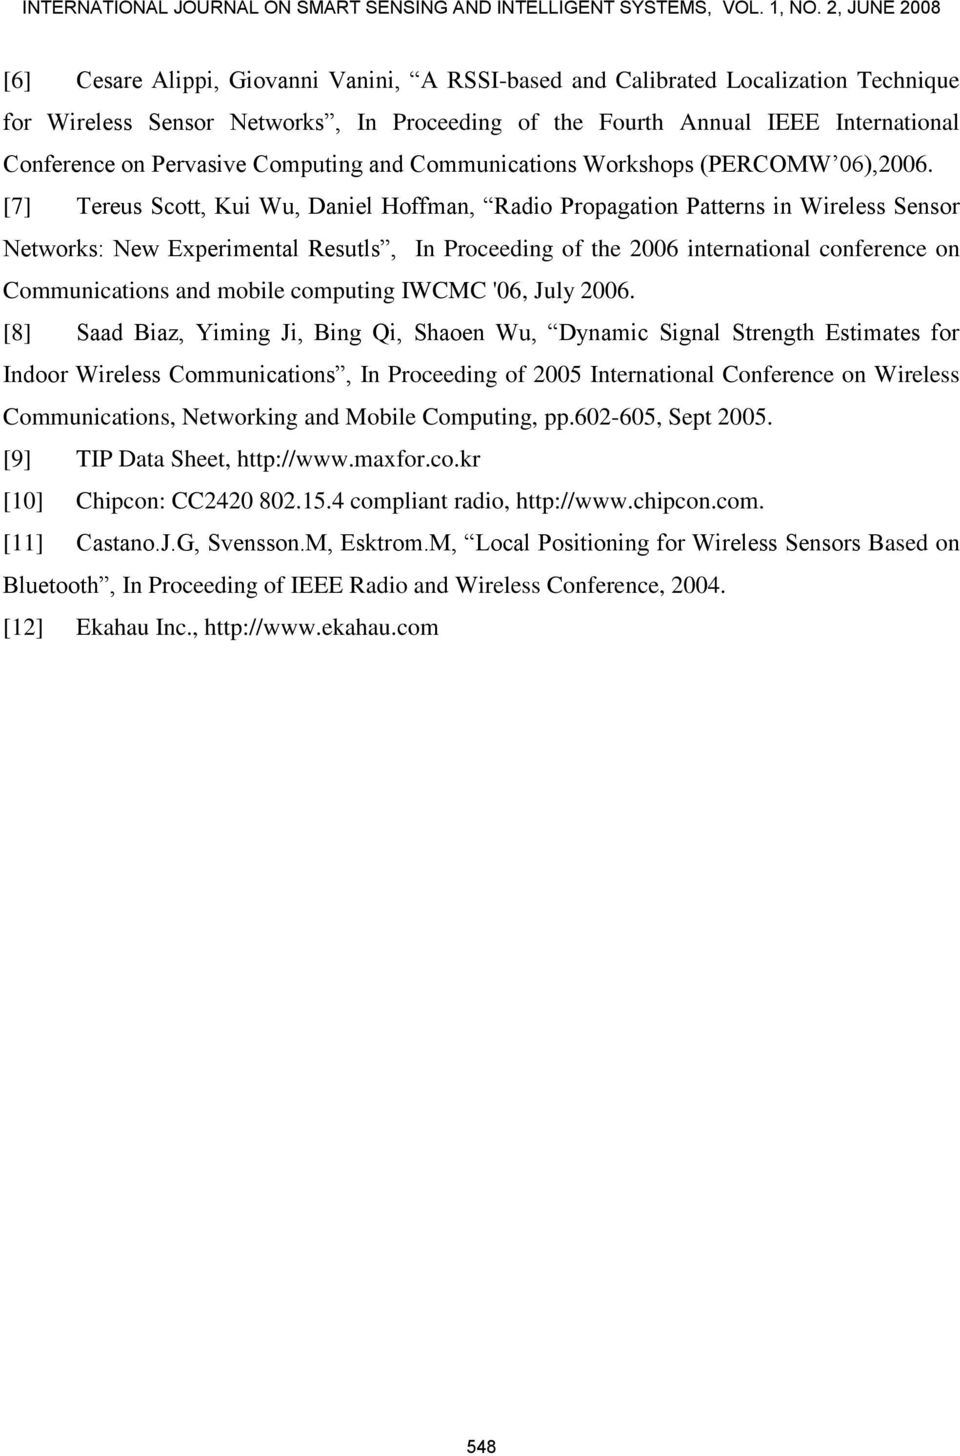 [7] Tereus Scott, Kui Wu, Daniel Hoffman, Radio Propagation Patterns in Wireless Sensor Networks: New Experimental Resutls, In Proceeding of the 2006 international conference on Communications and